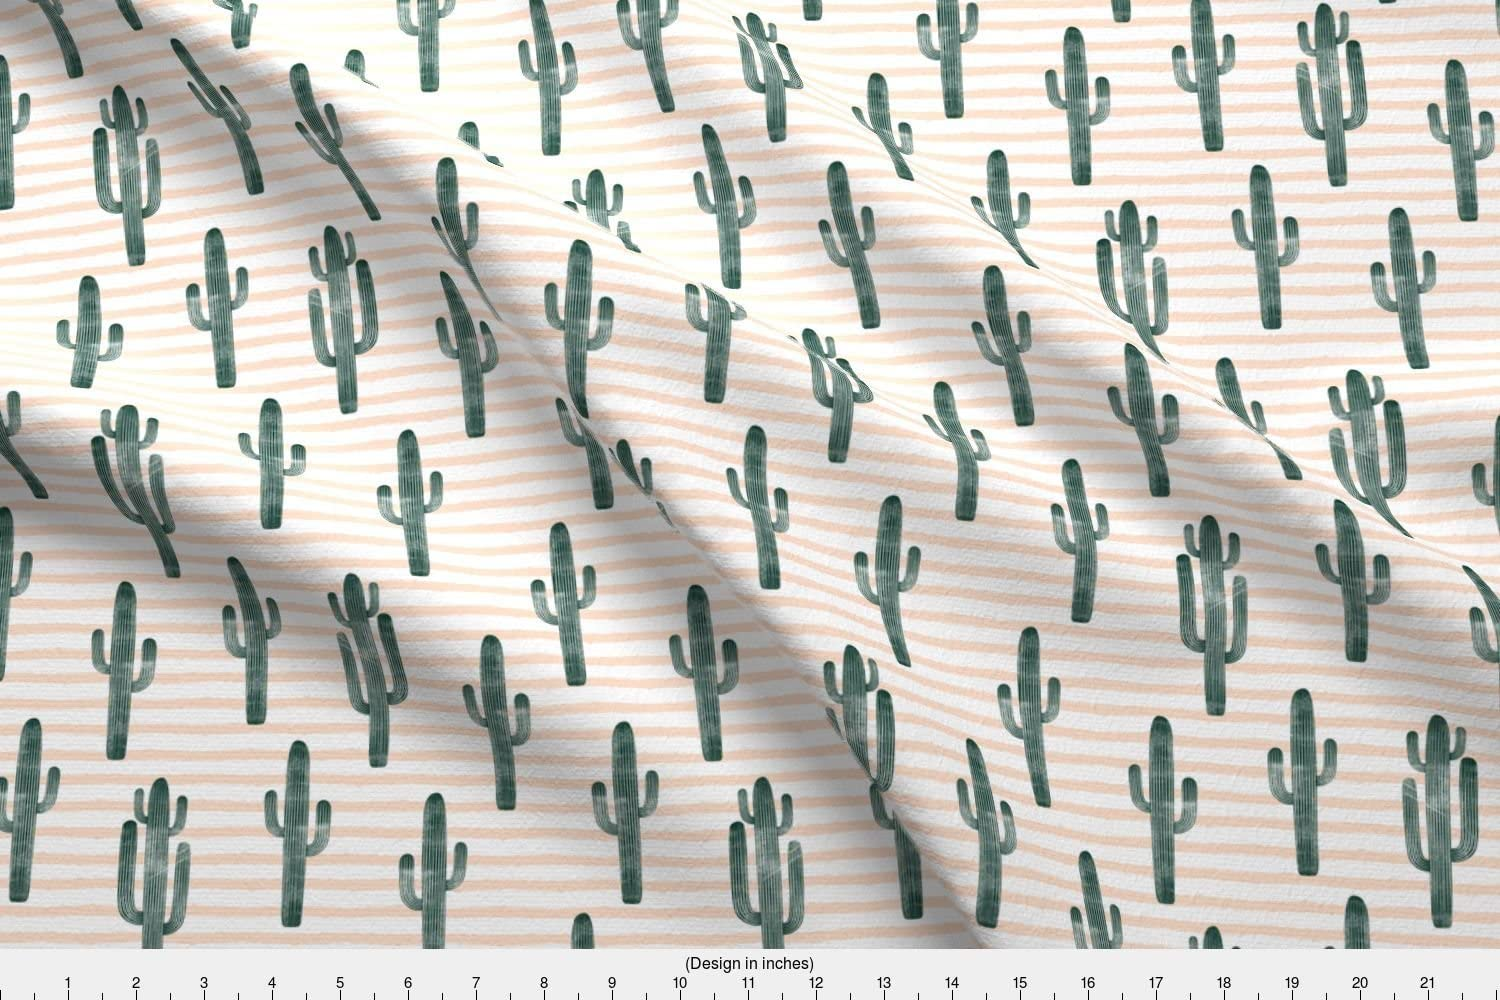 Spoonflower Manufacturer OFFicial shop Fabric - Our shop OFFers the best service 6365039 Printed The by Yard Minky on